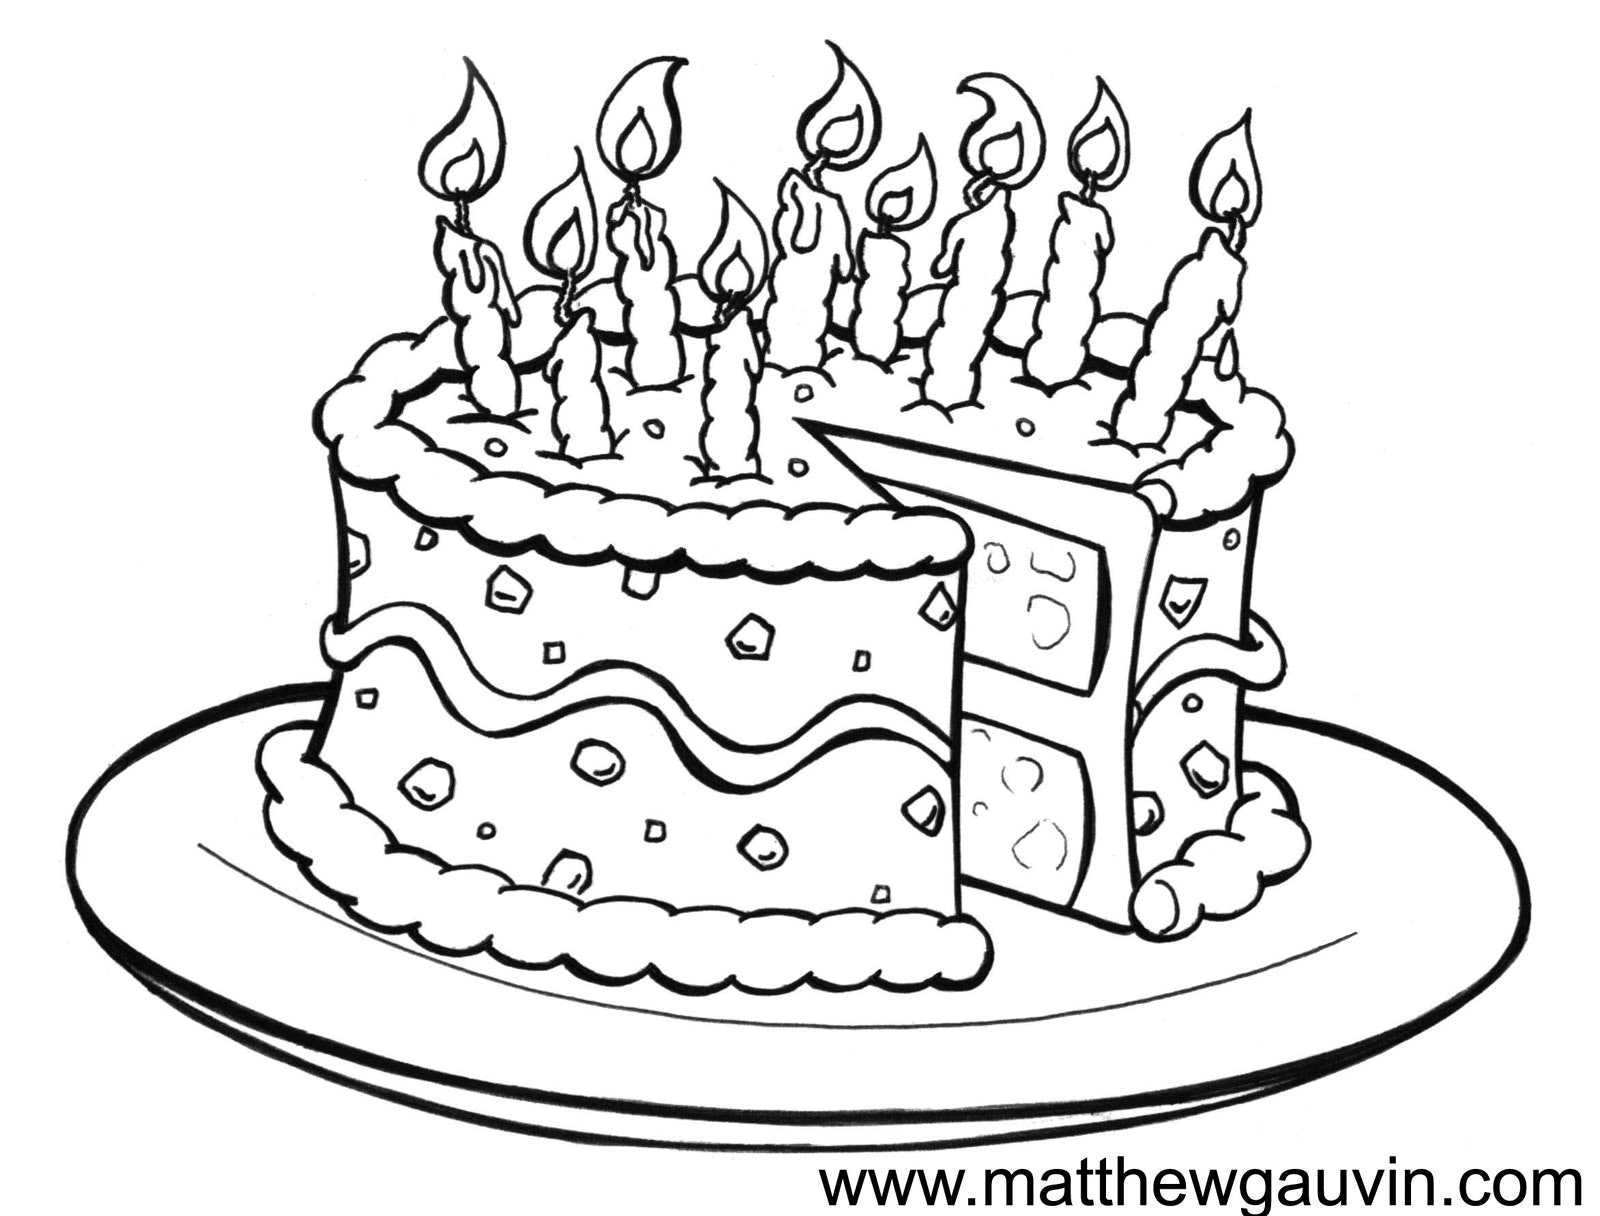 cool birthday drawings ; gorgeous-ideas-cake-drawing-and-cool-birthday-drawings-delicious-cakes